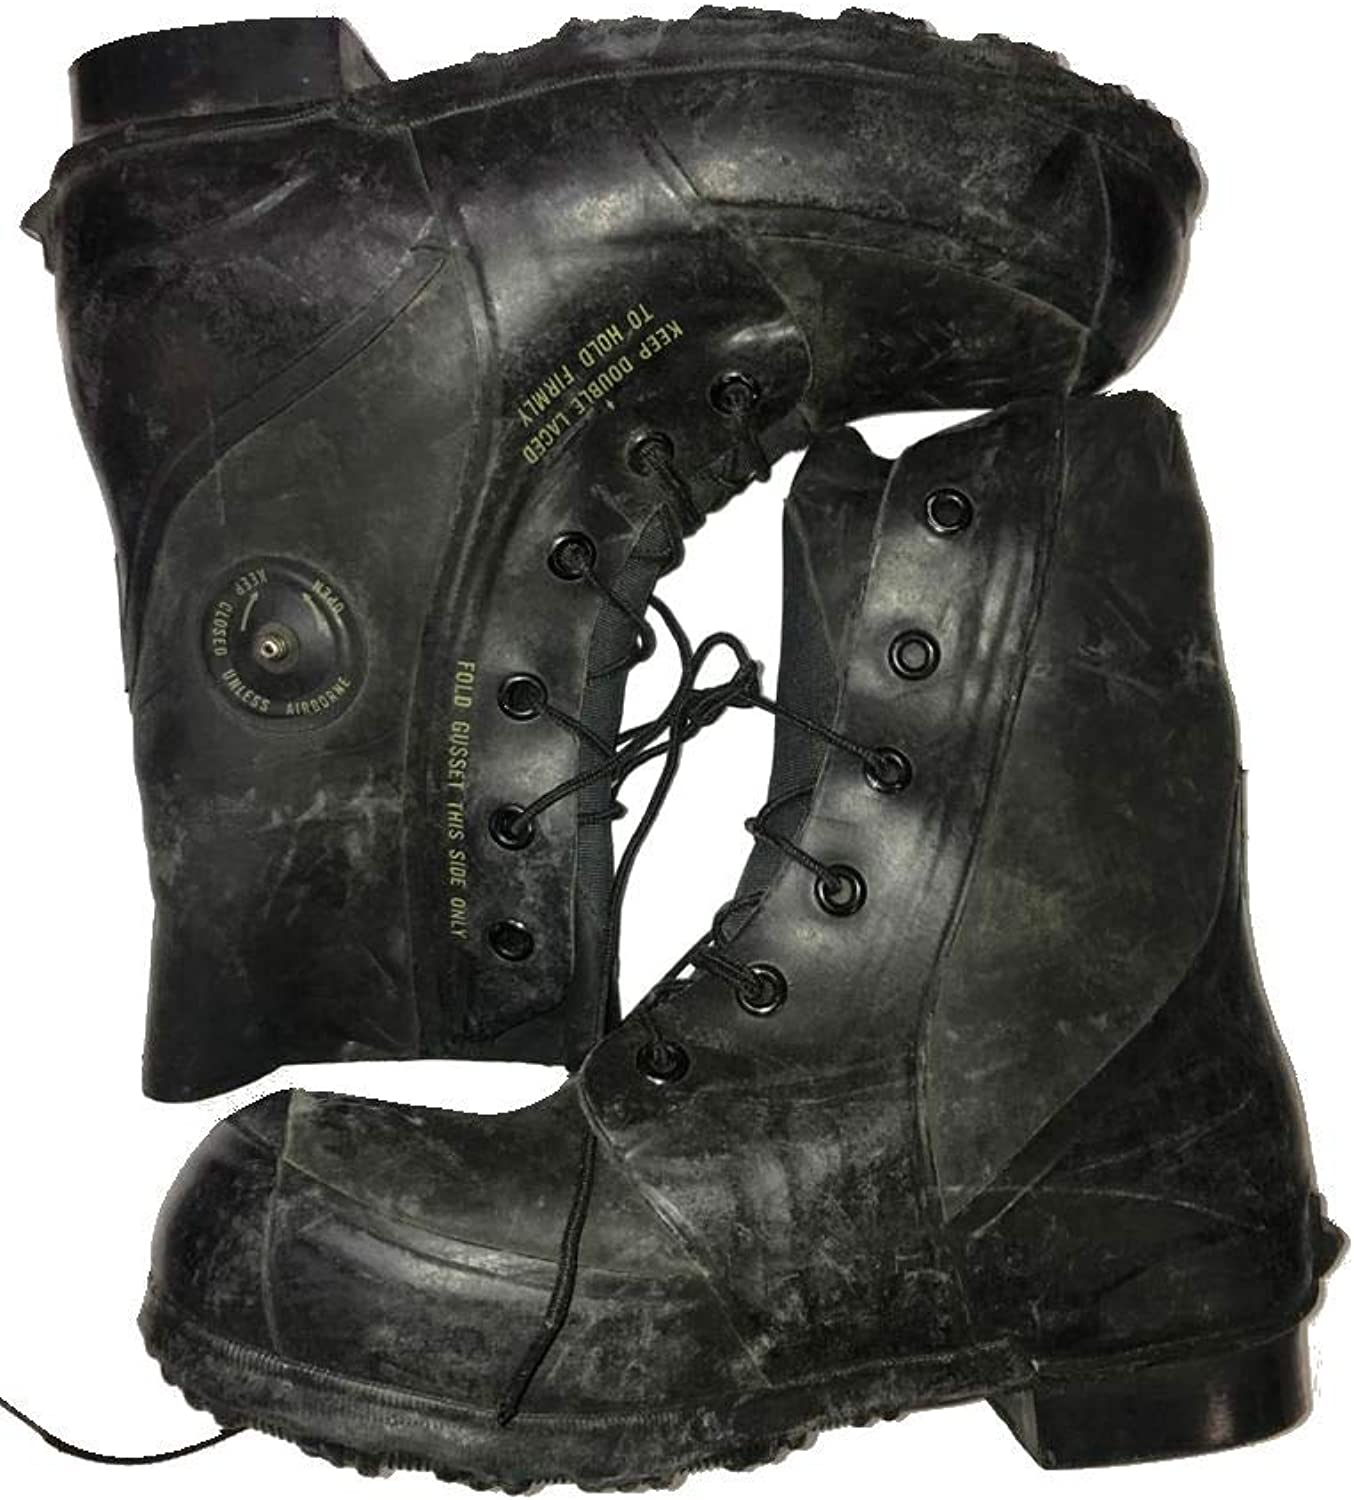 Combat Boot,Mickey Mouse Extreme Cold Weather Boots, Waterproof Rubber, Genuine U.S. Military Issue New Slightly Scuffed Black